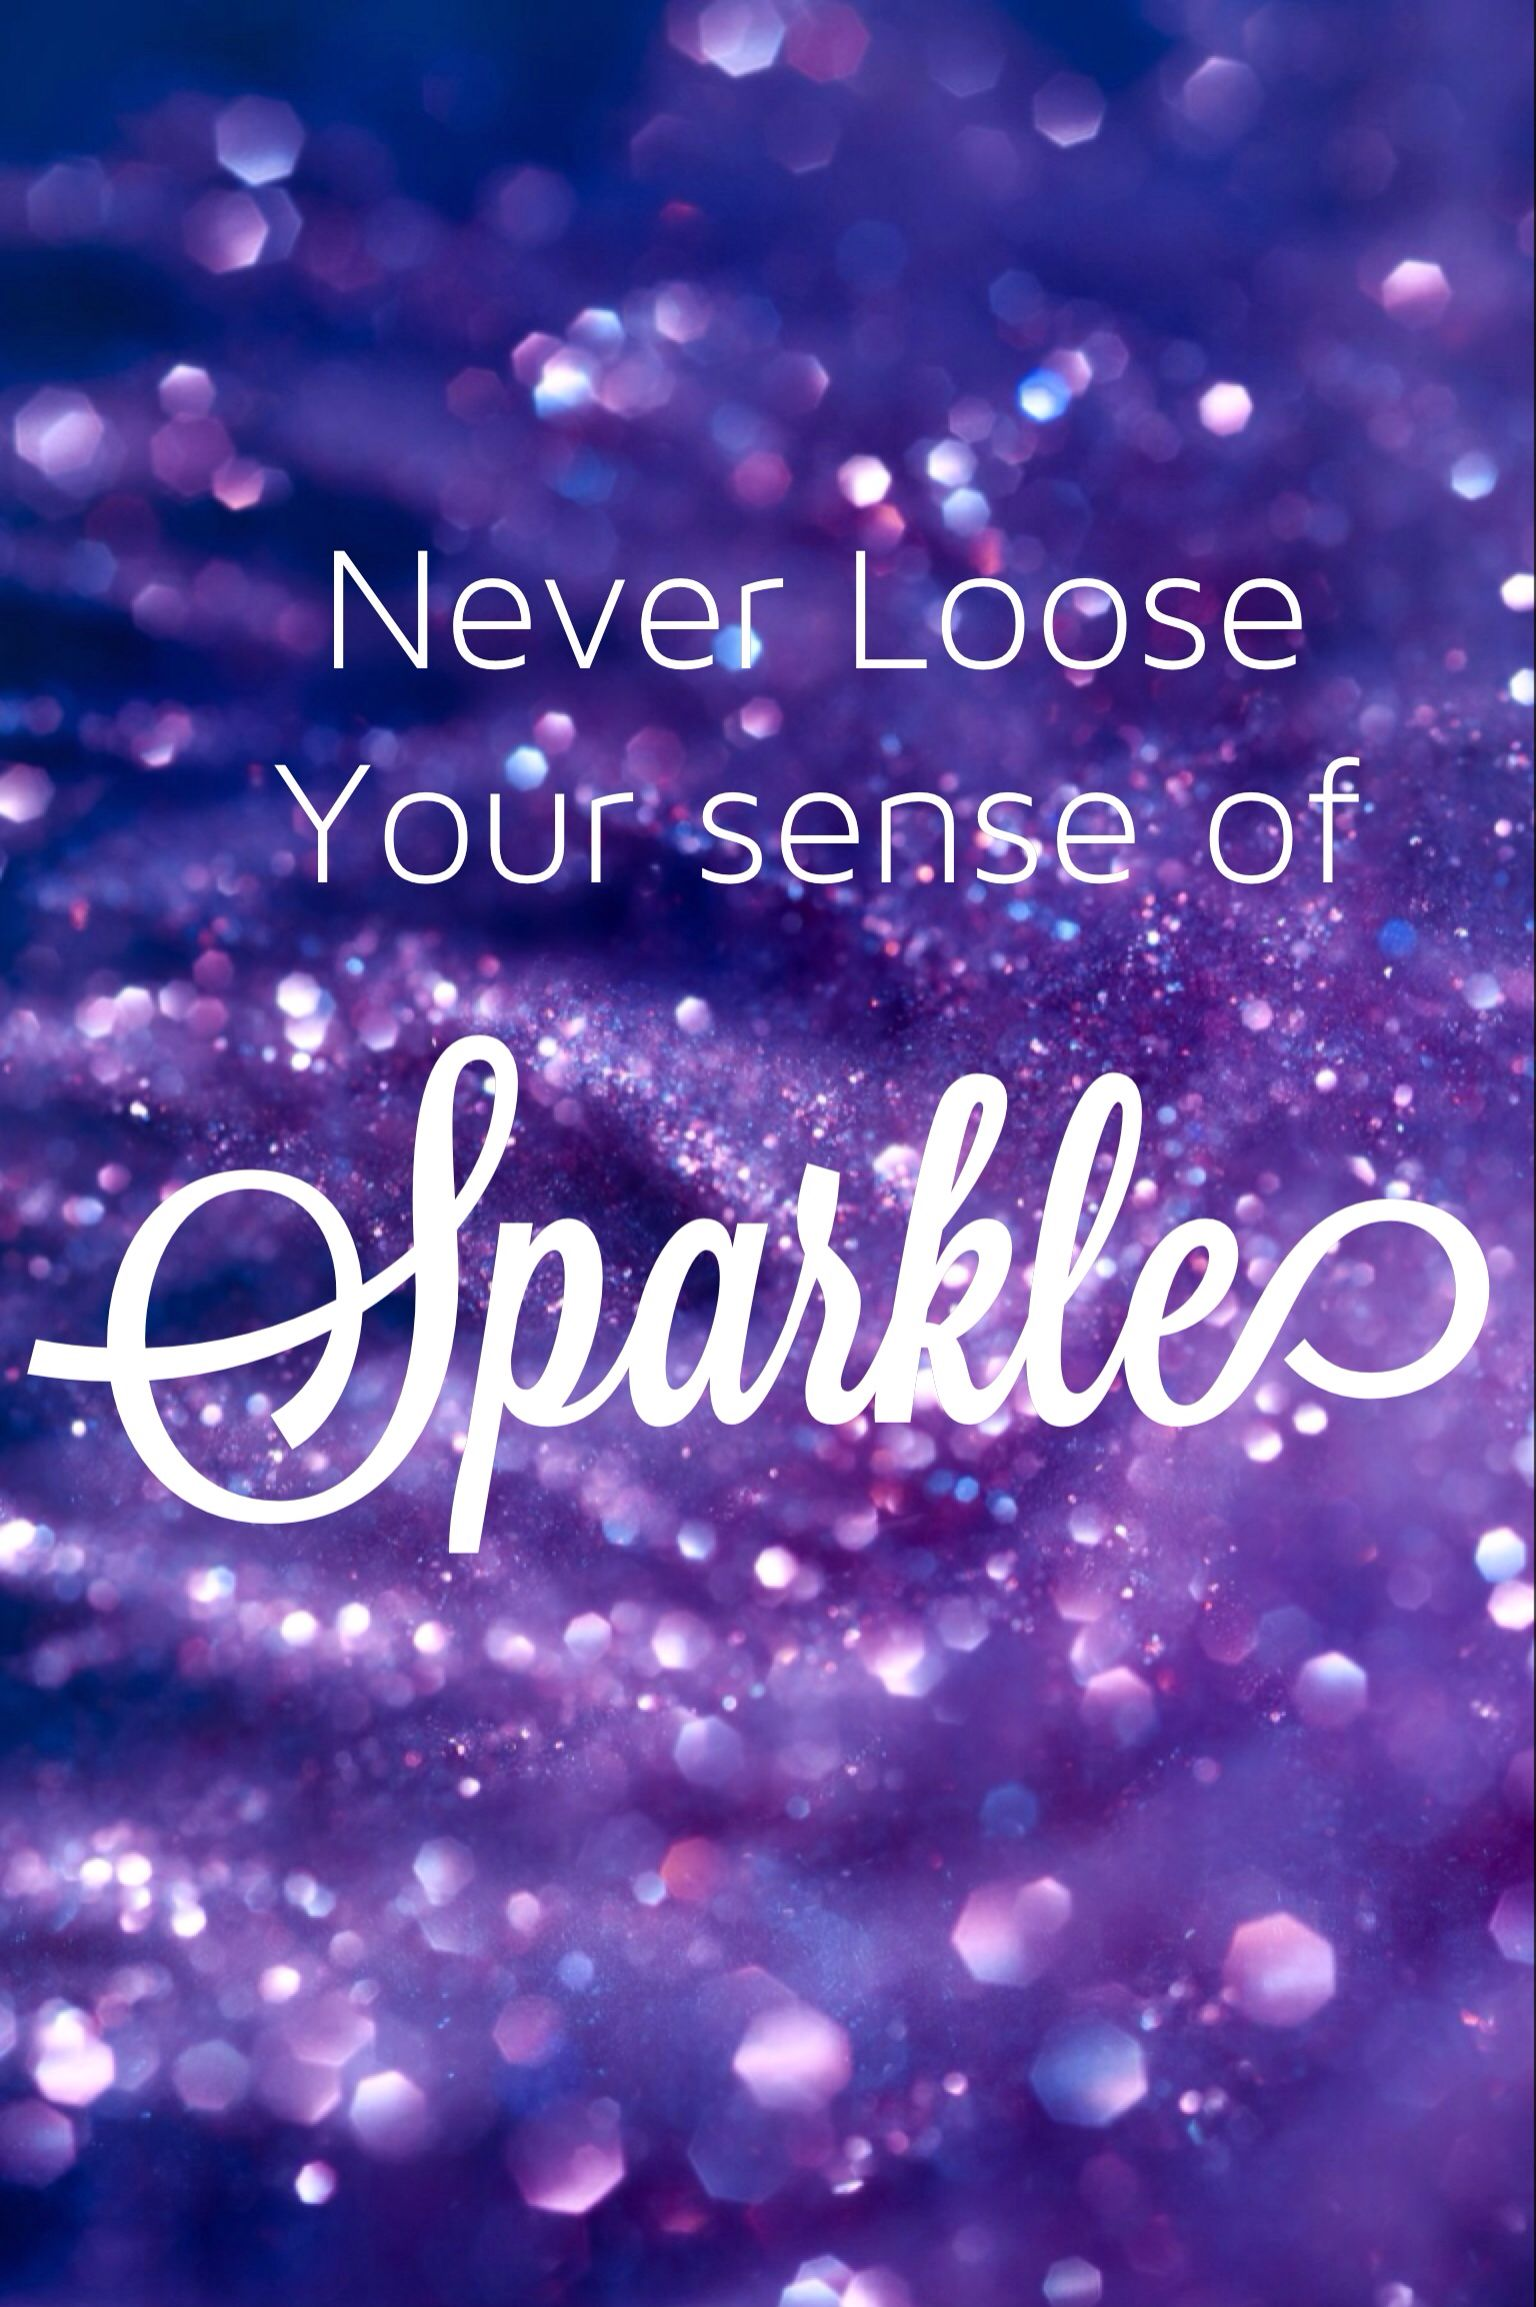 Sparkler … Sparkle quotes, Inspirational quotes, Glitter